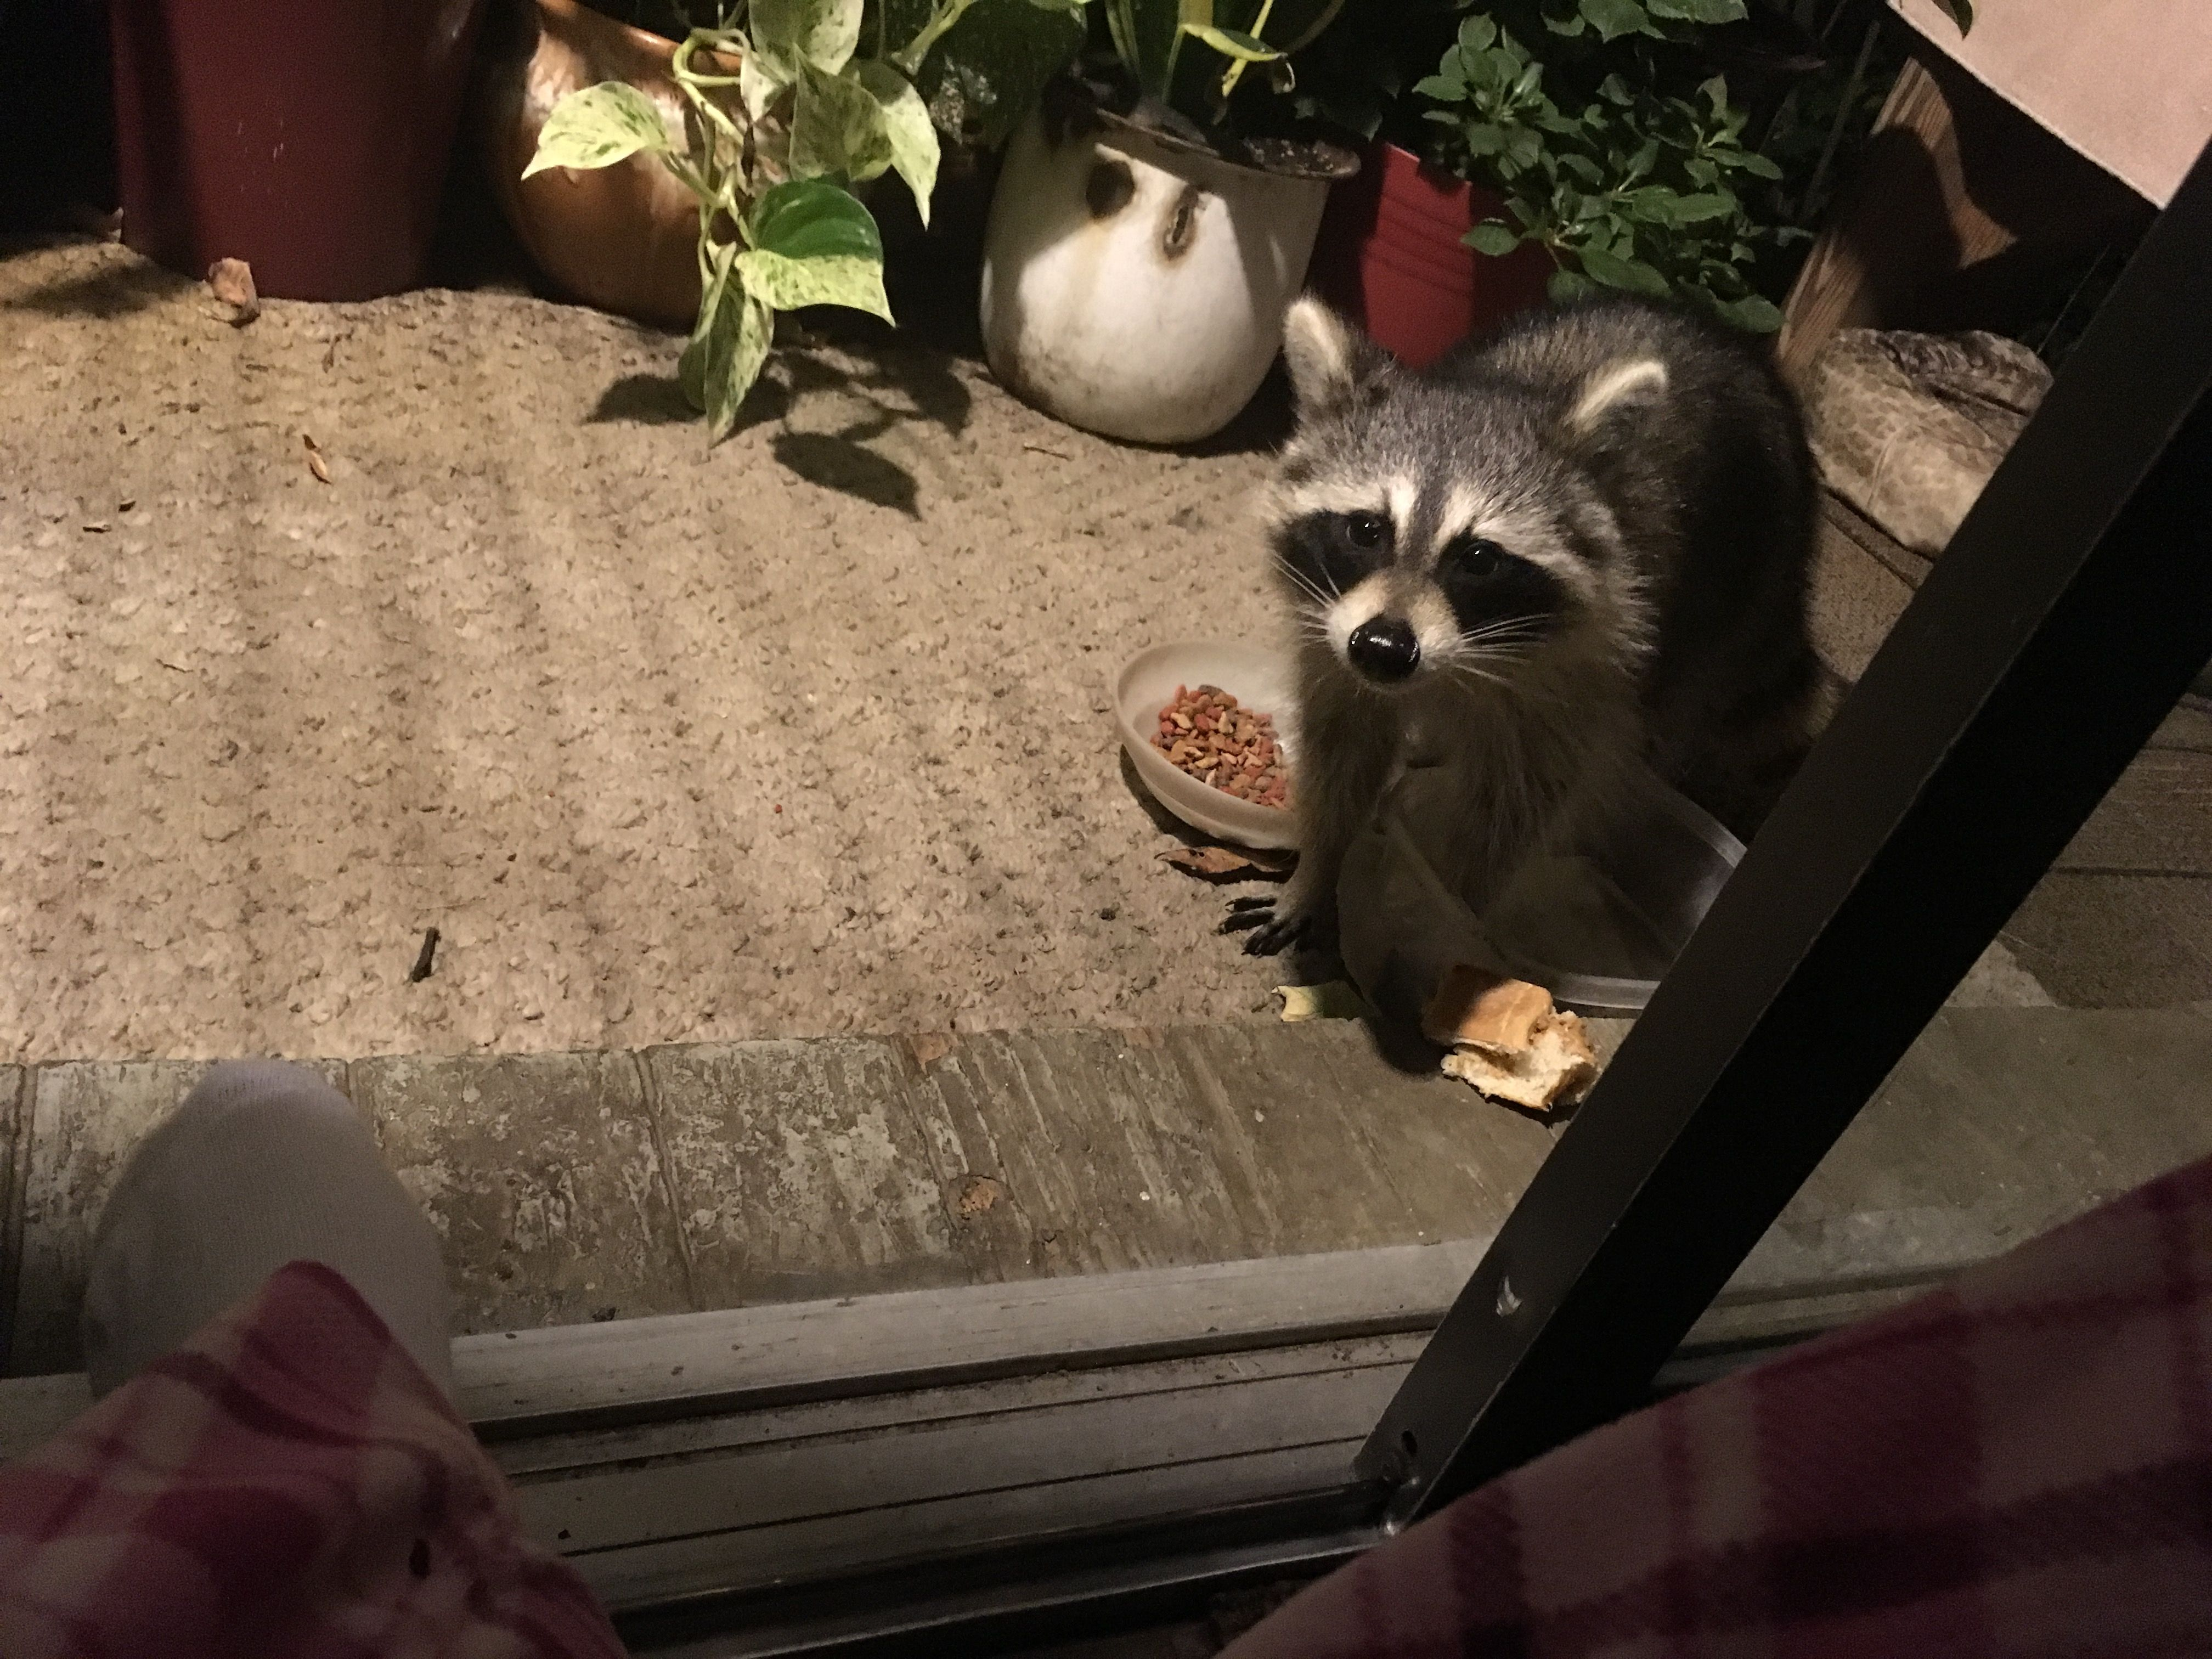 Pin by Shannon on Raccoons In My Neighborhood | Pinterest | Raccoons